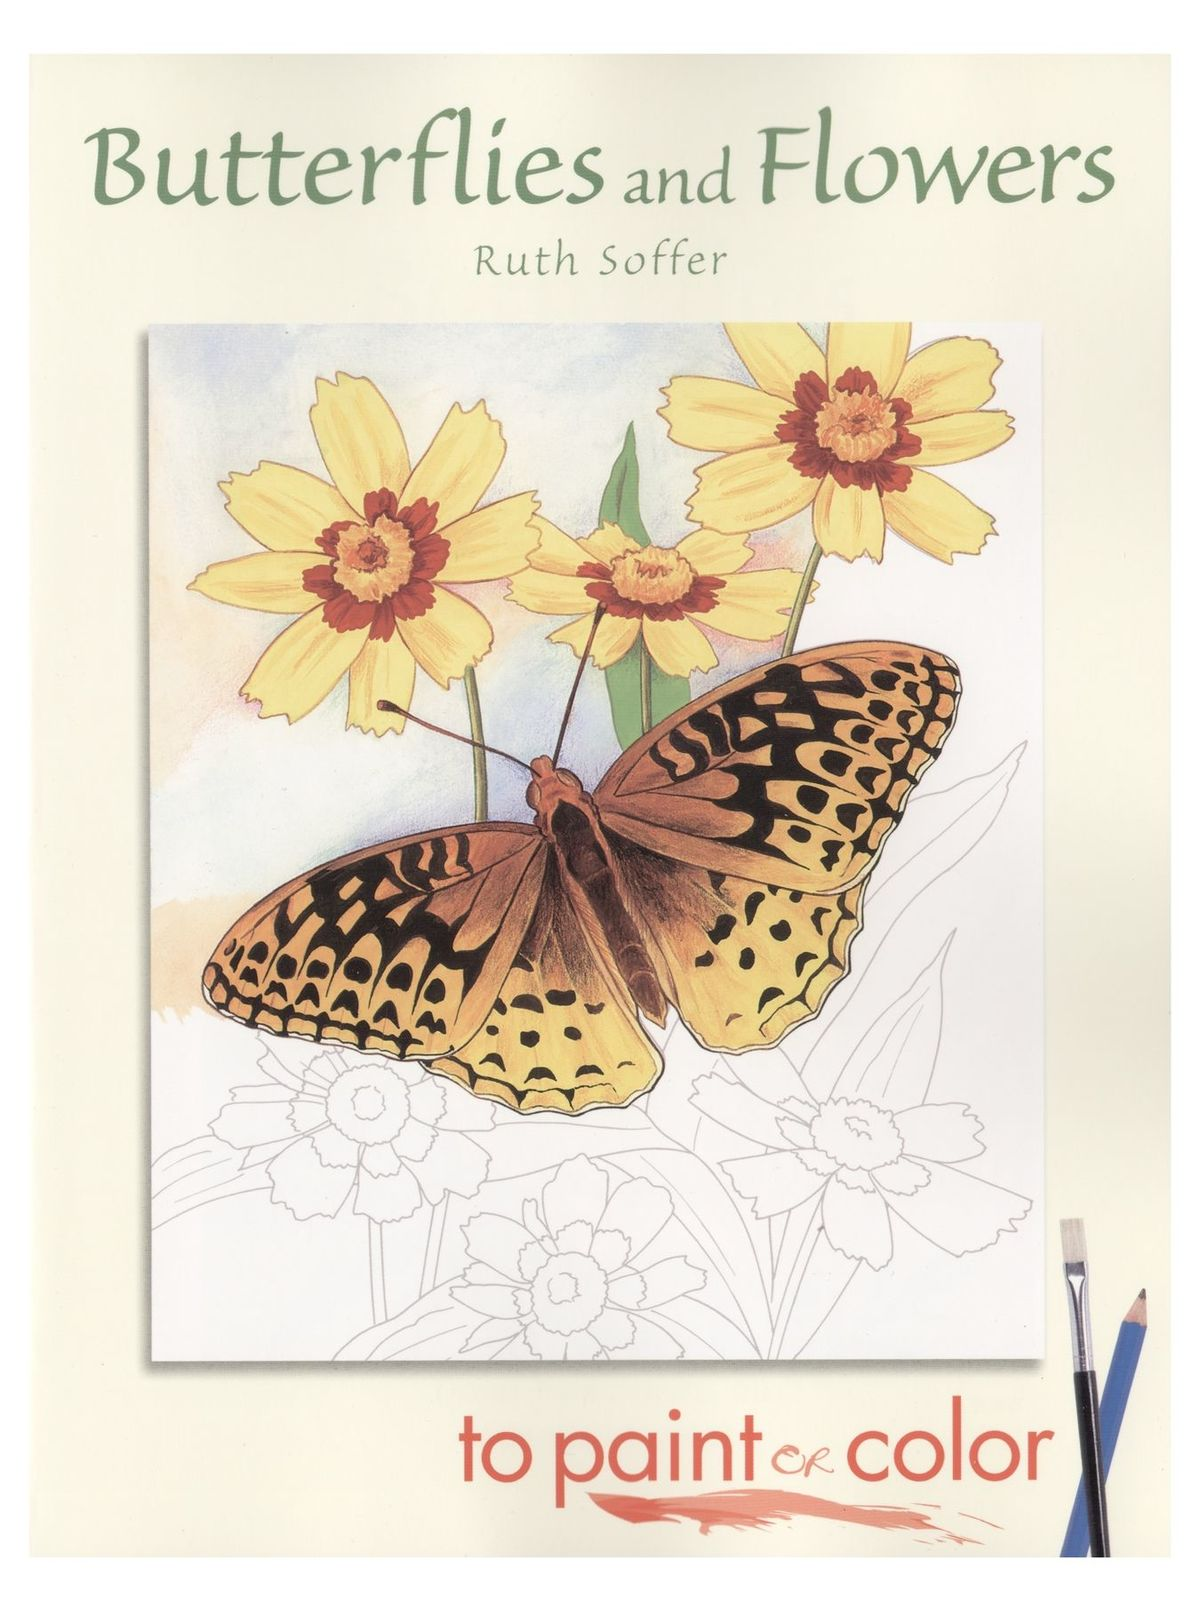 Butterflies and Flowers to Paint and Color